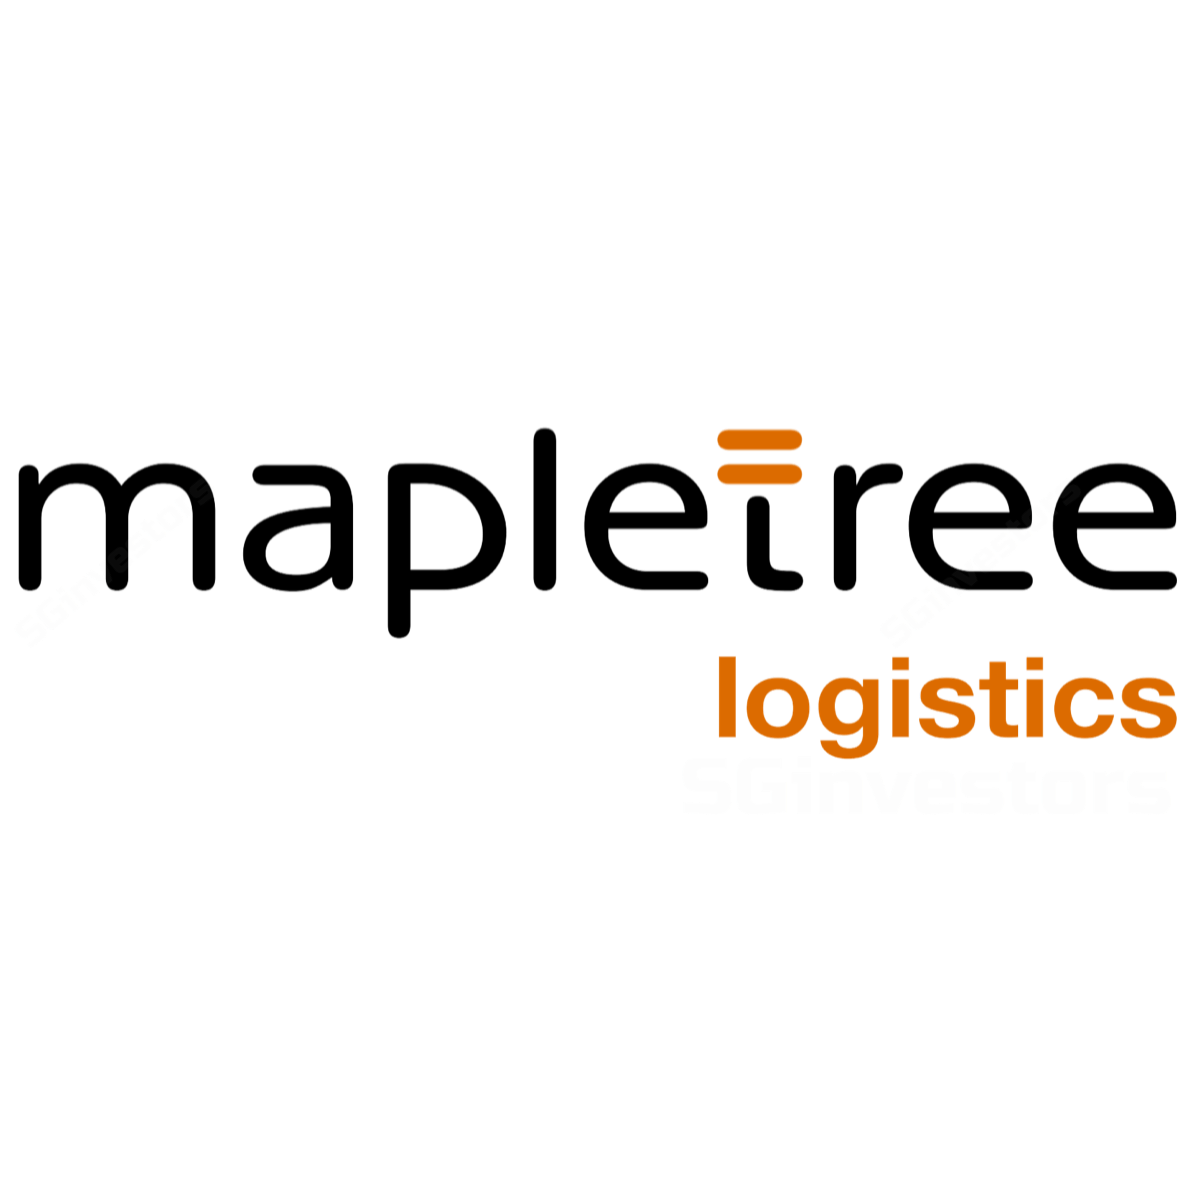 Mapletree Logistics Trust - Maybank Kim Eng Research 2018-07-24: Acquisition Momentum